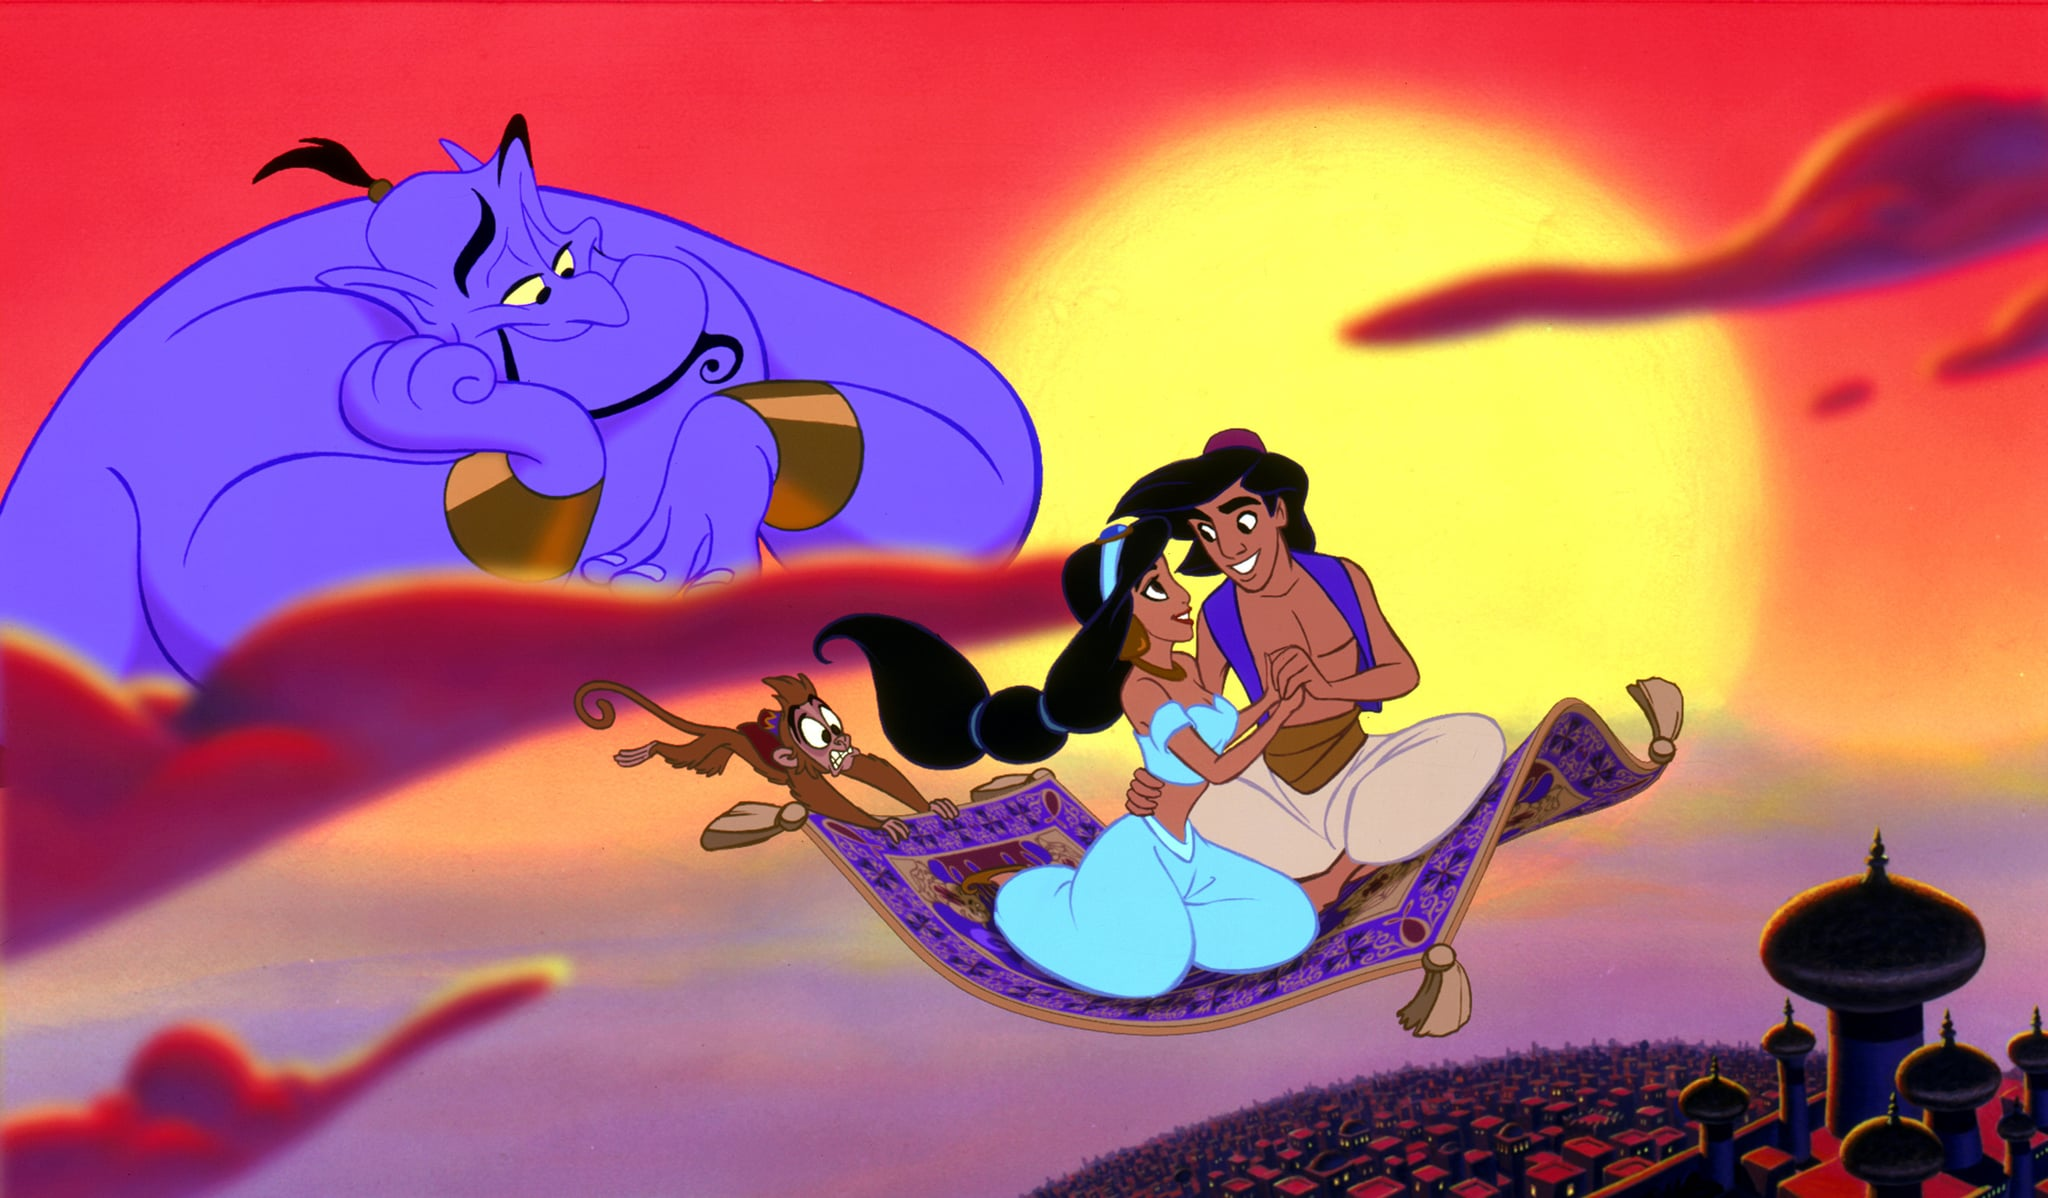 ALADDIN, Genie, Jasmine, Aladdin, 1992. (c) Buena Vista Pictures/ Courtesy: Everett Collection.